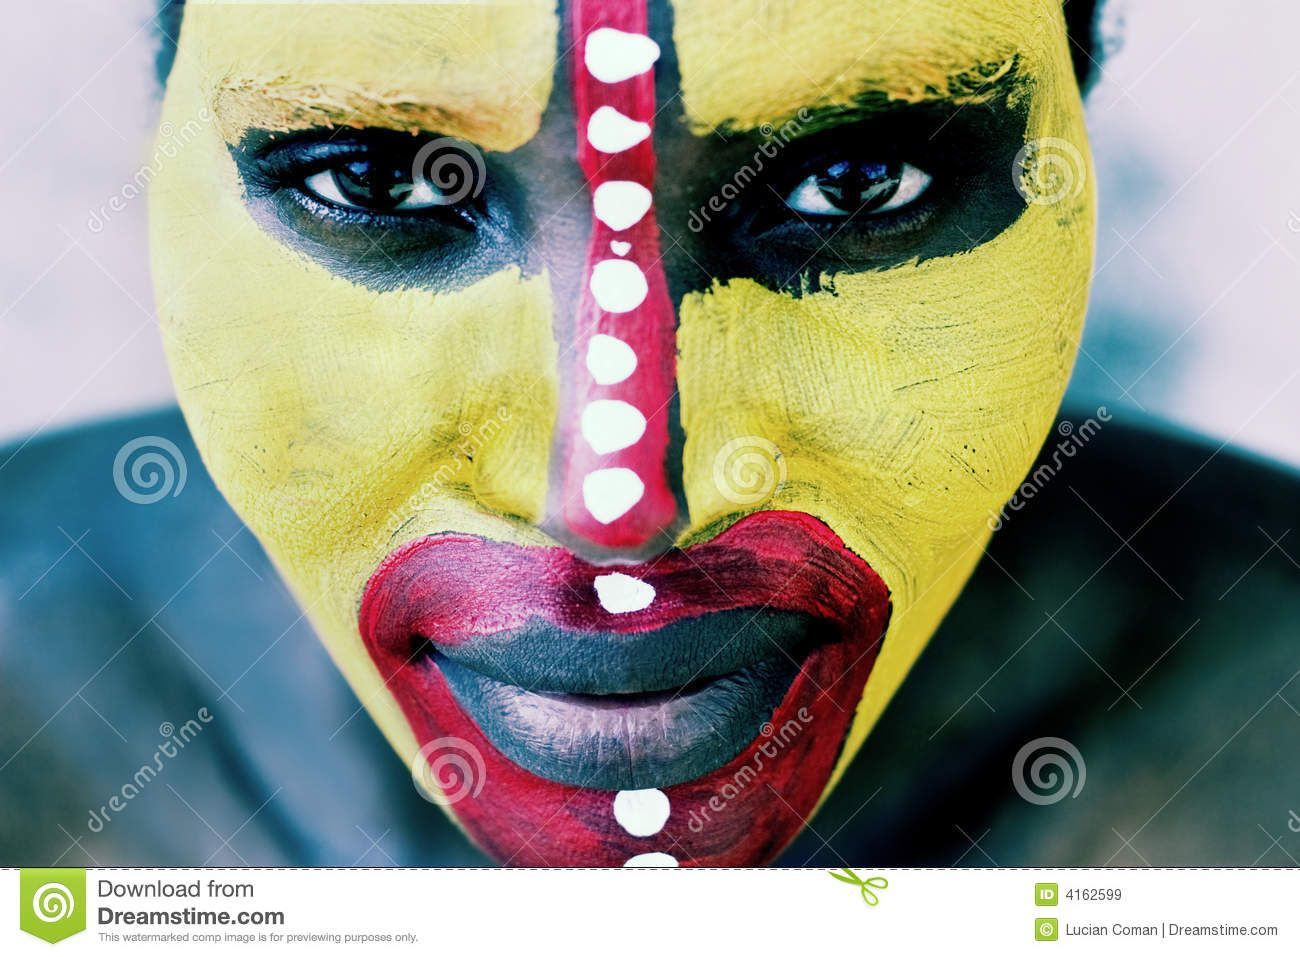 african tribal face paint - Google Search